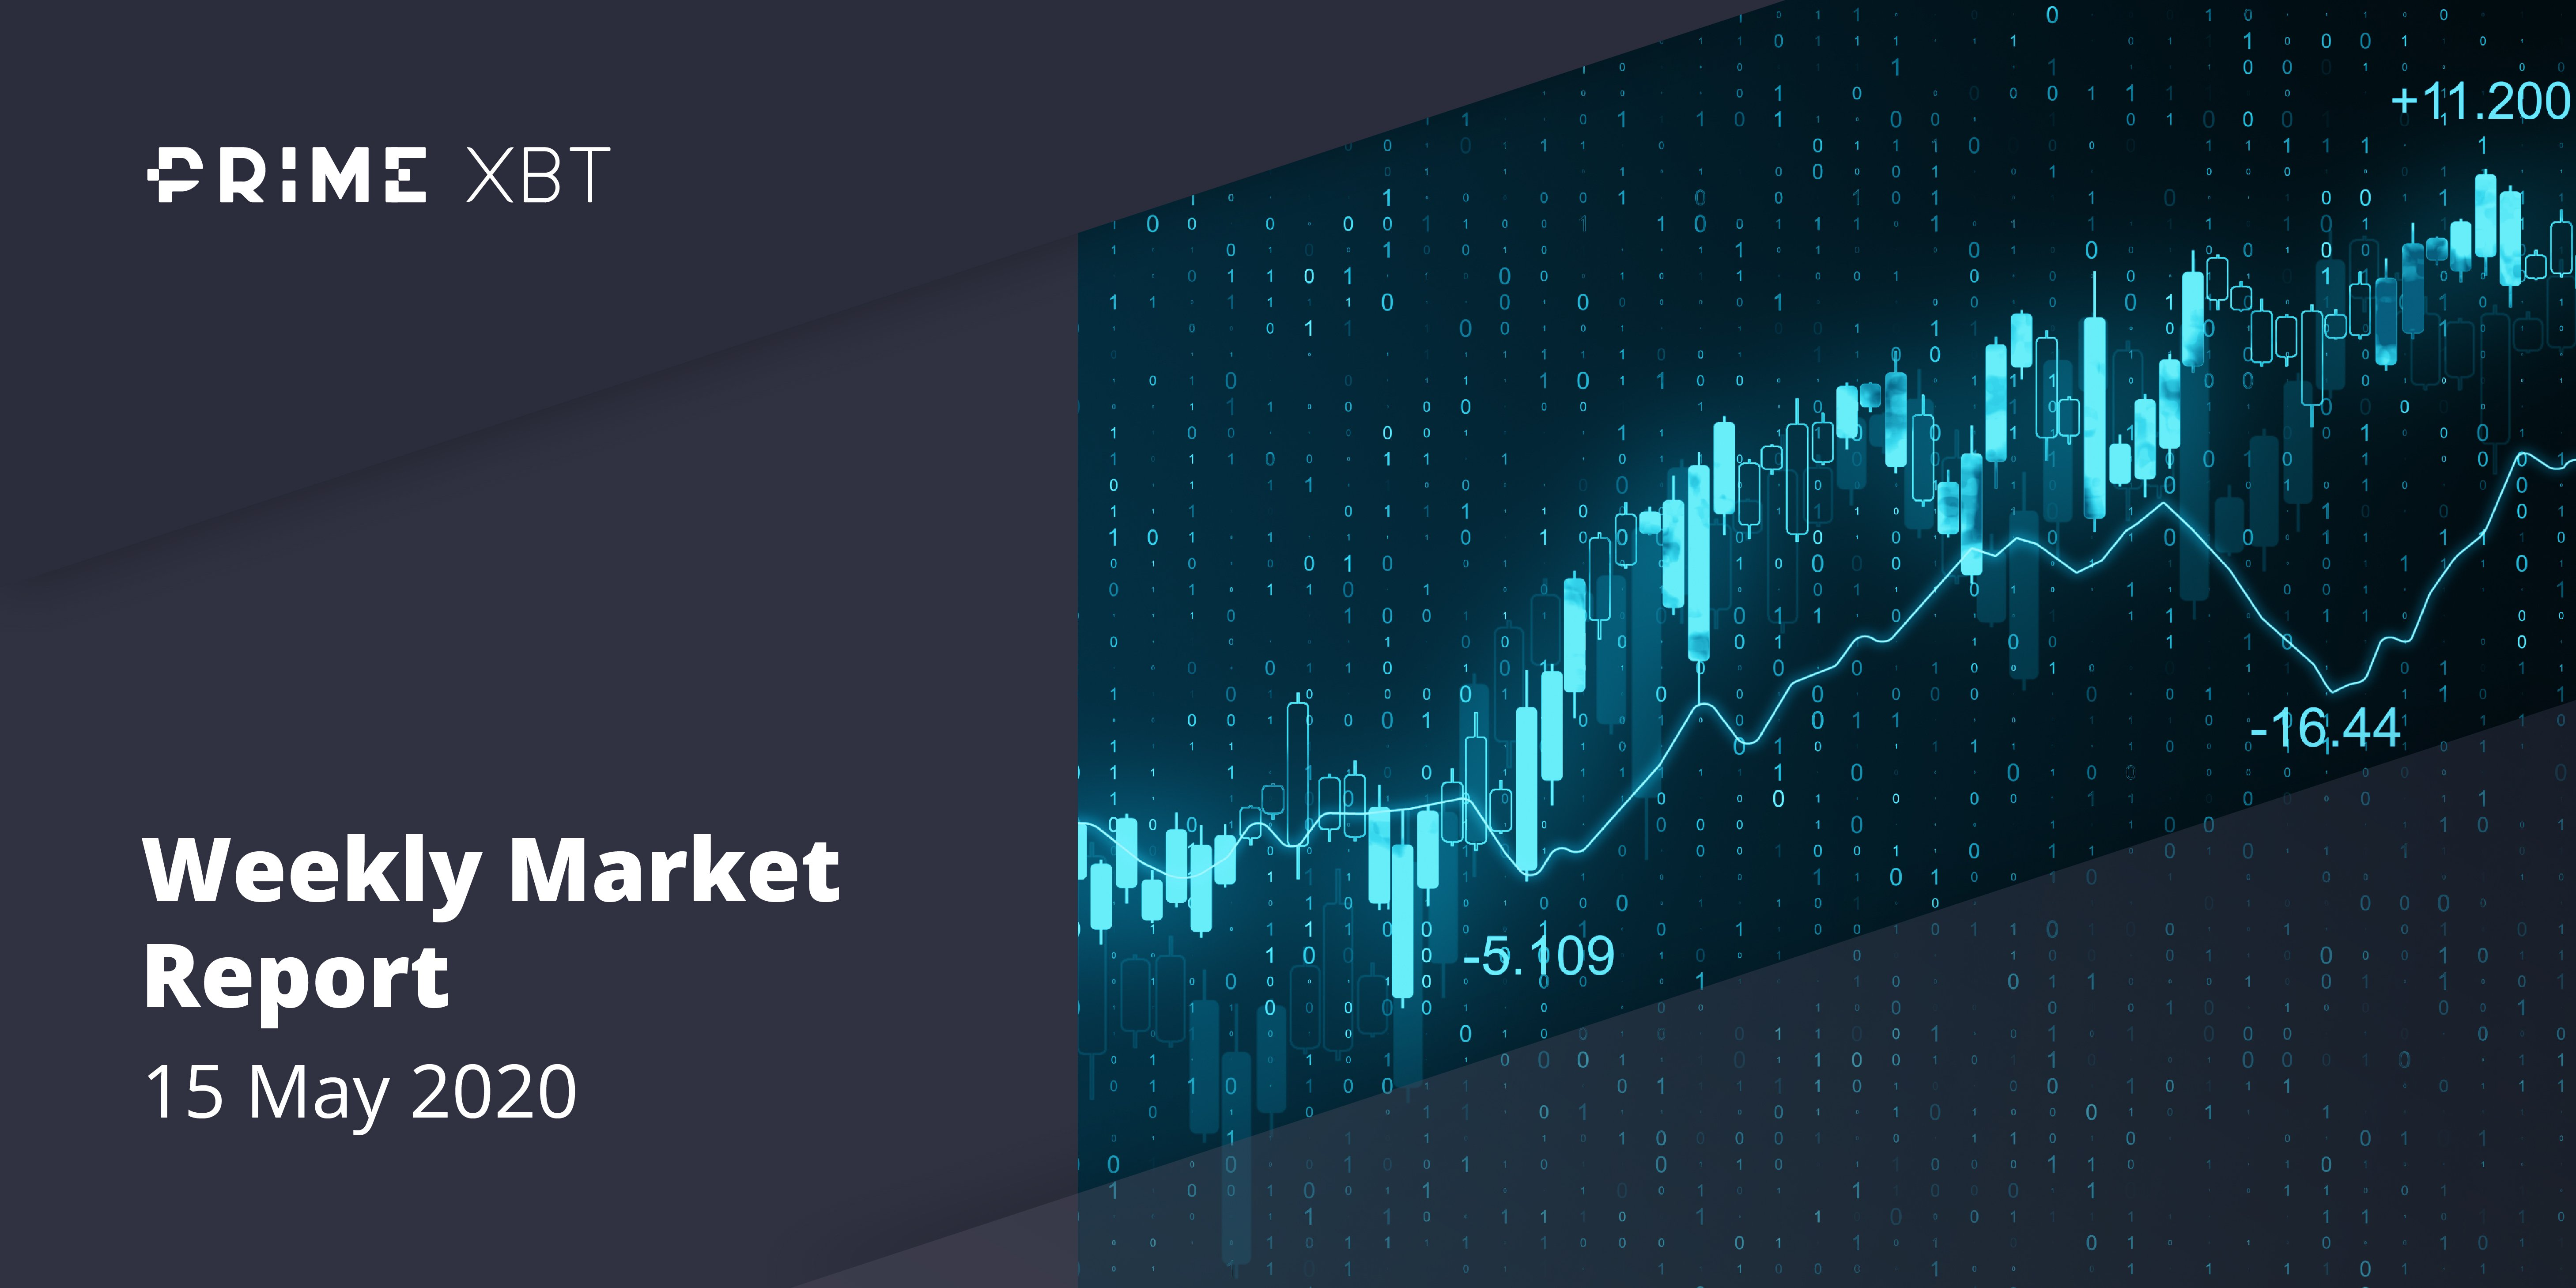 15.05.20 - Crypto Market Report: Bitcoin's Post Halving Actions Spells Volatility But Bullish Tendencies as Decoupling From Stocks Seems Evident